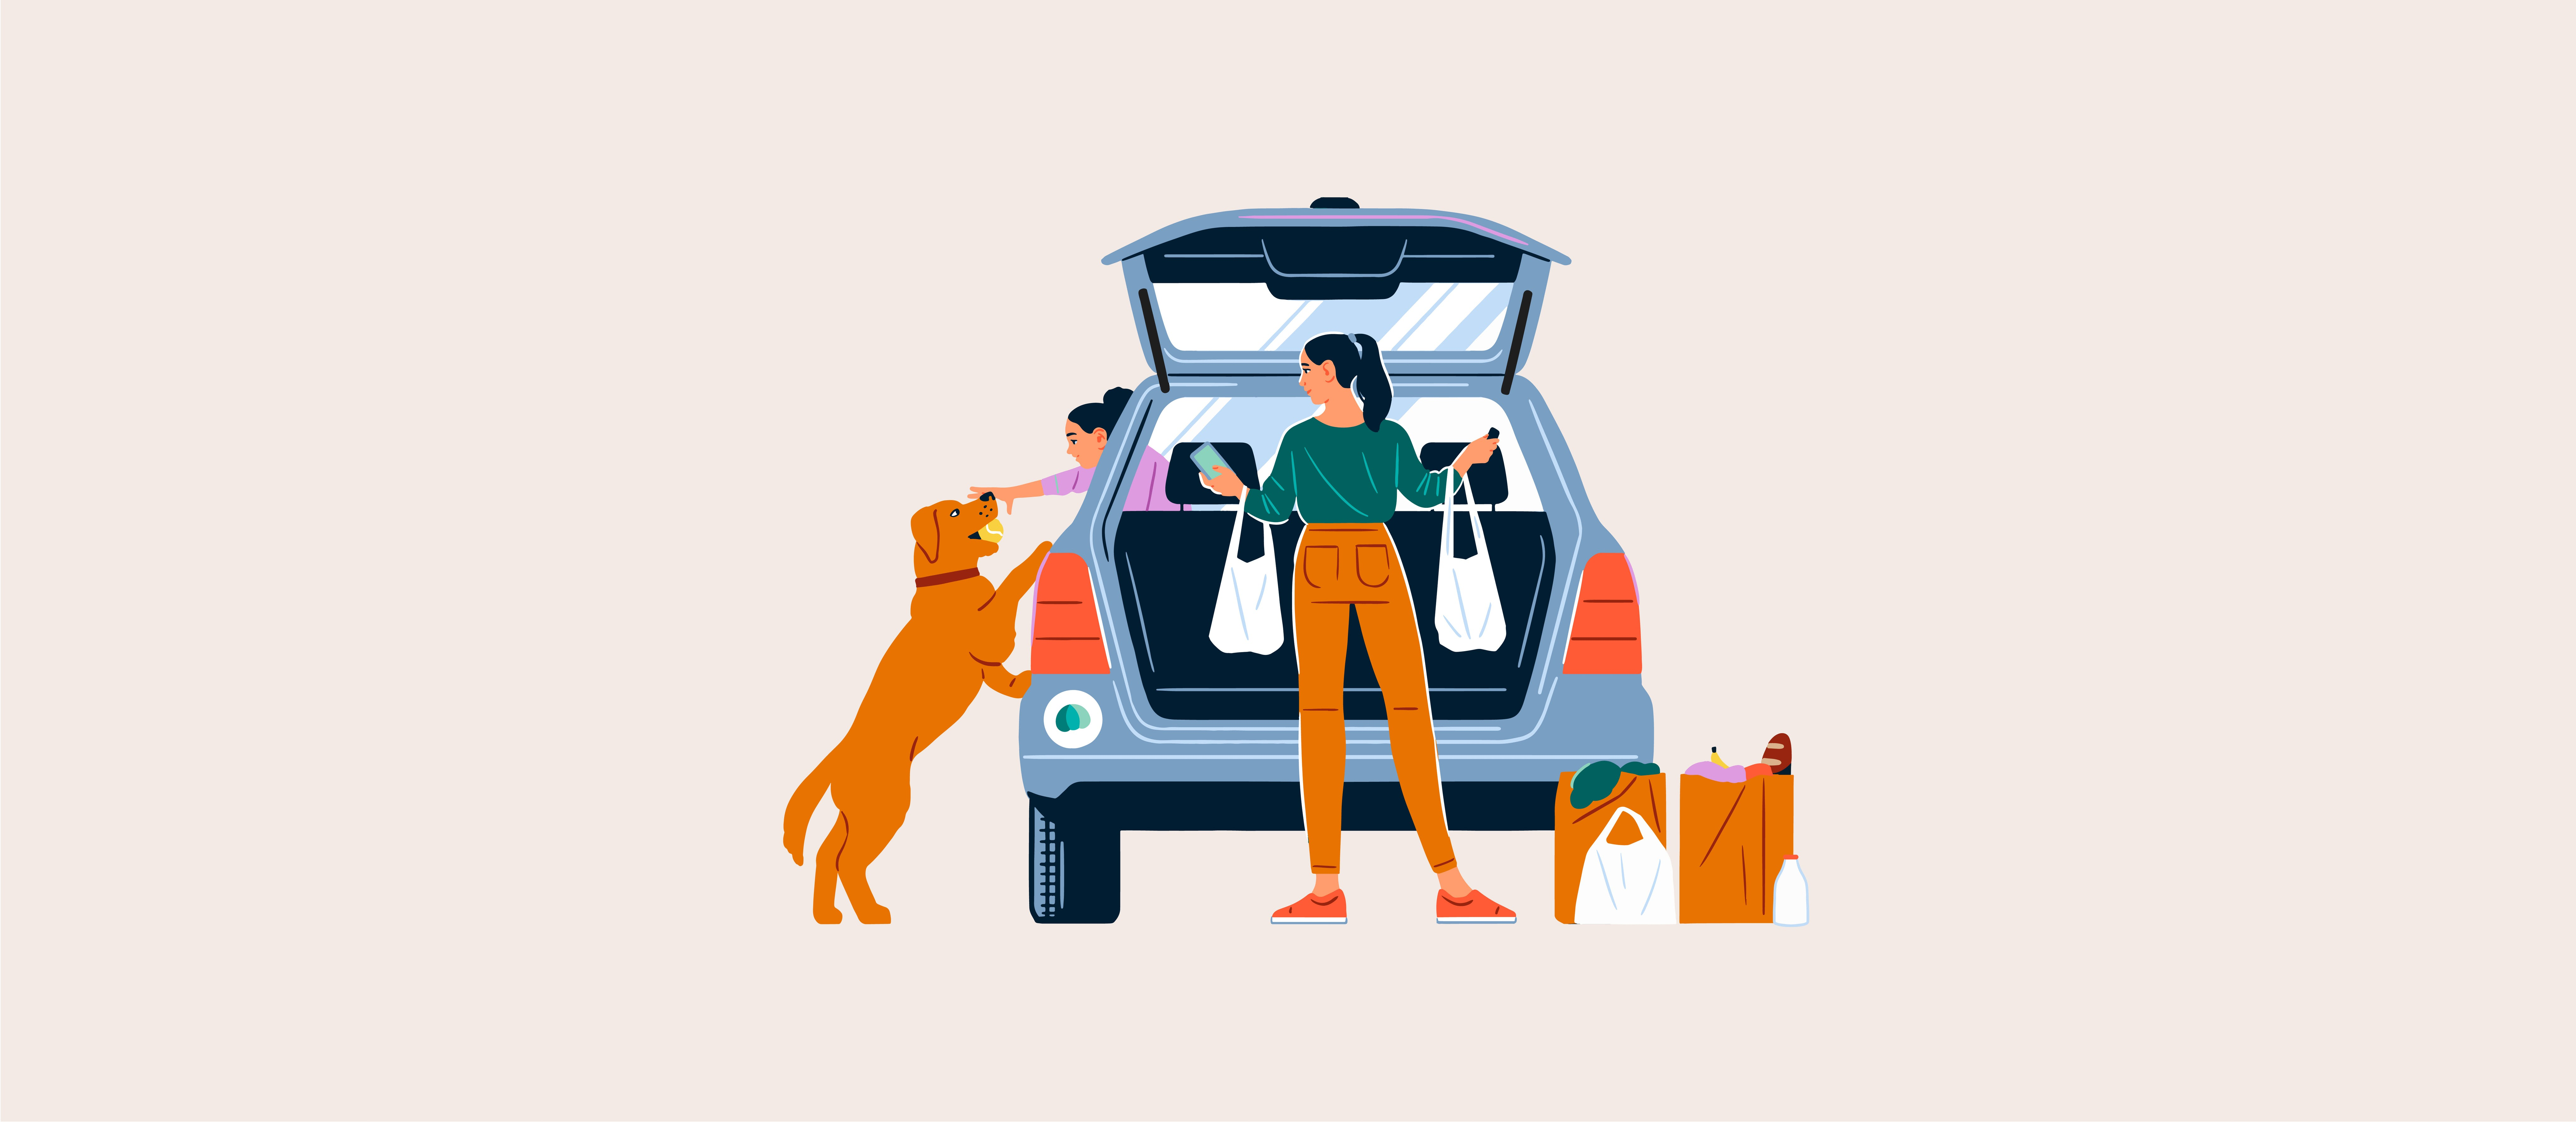 Illustration of woman unloading groceries from a car with a young girl and dog nearby.